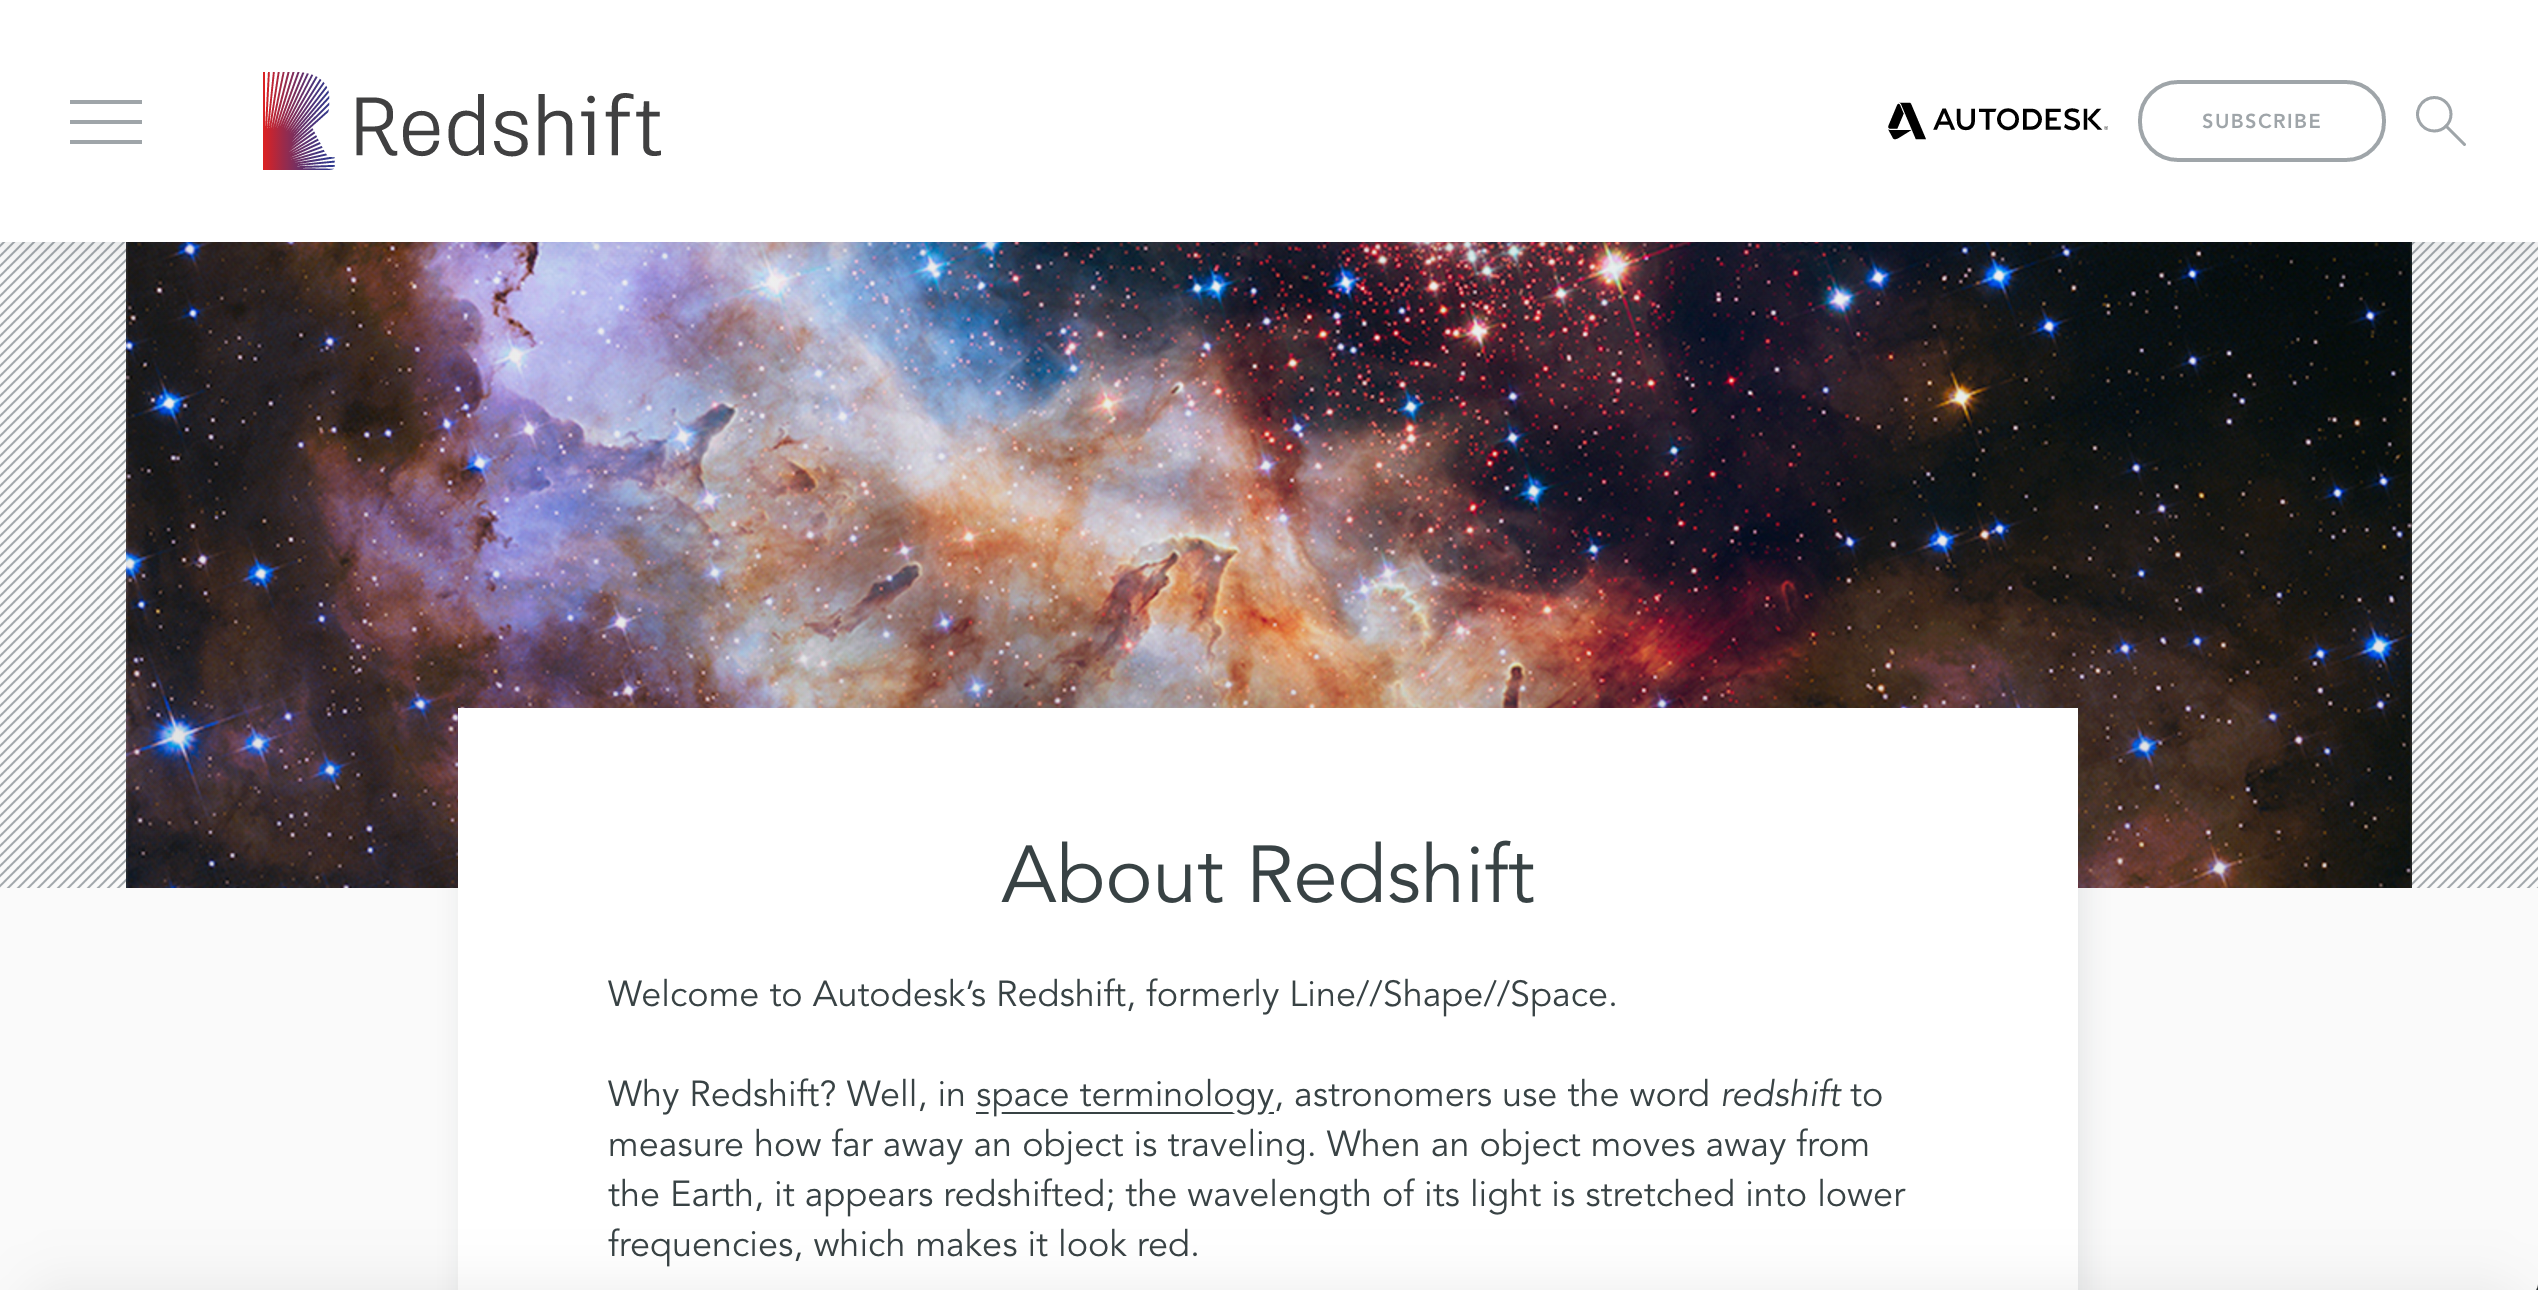 Autodesk_Redshift.png